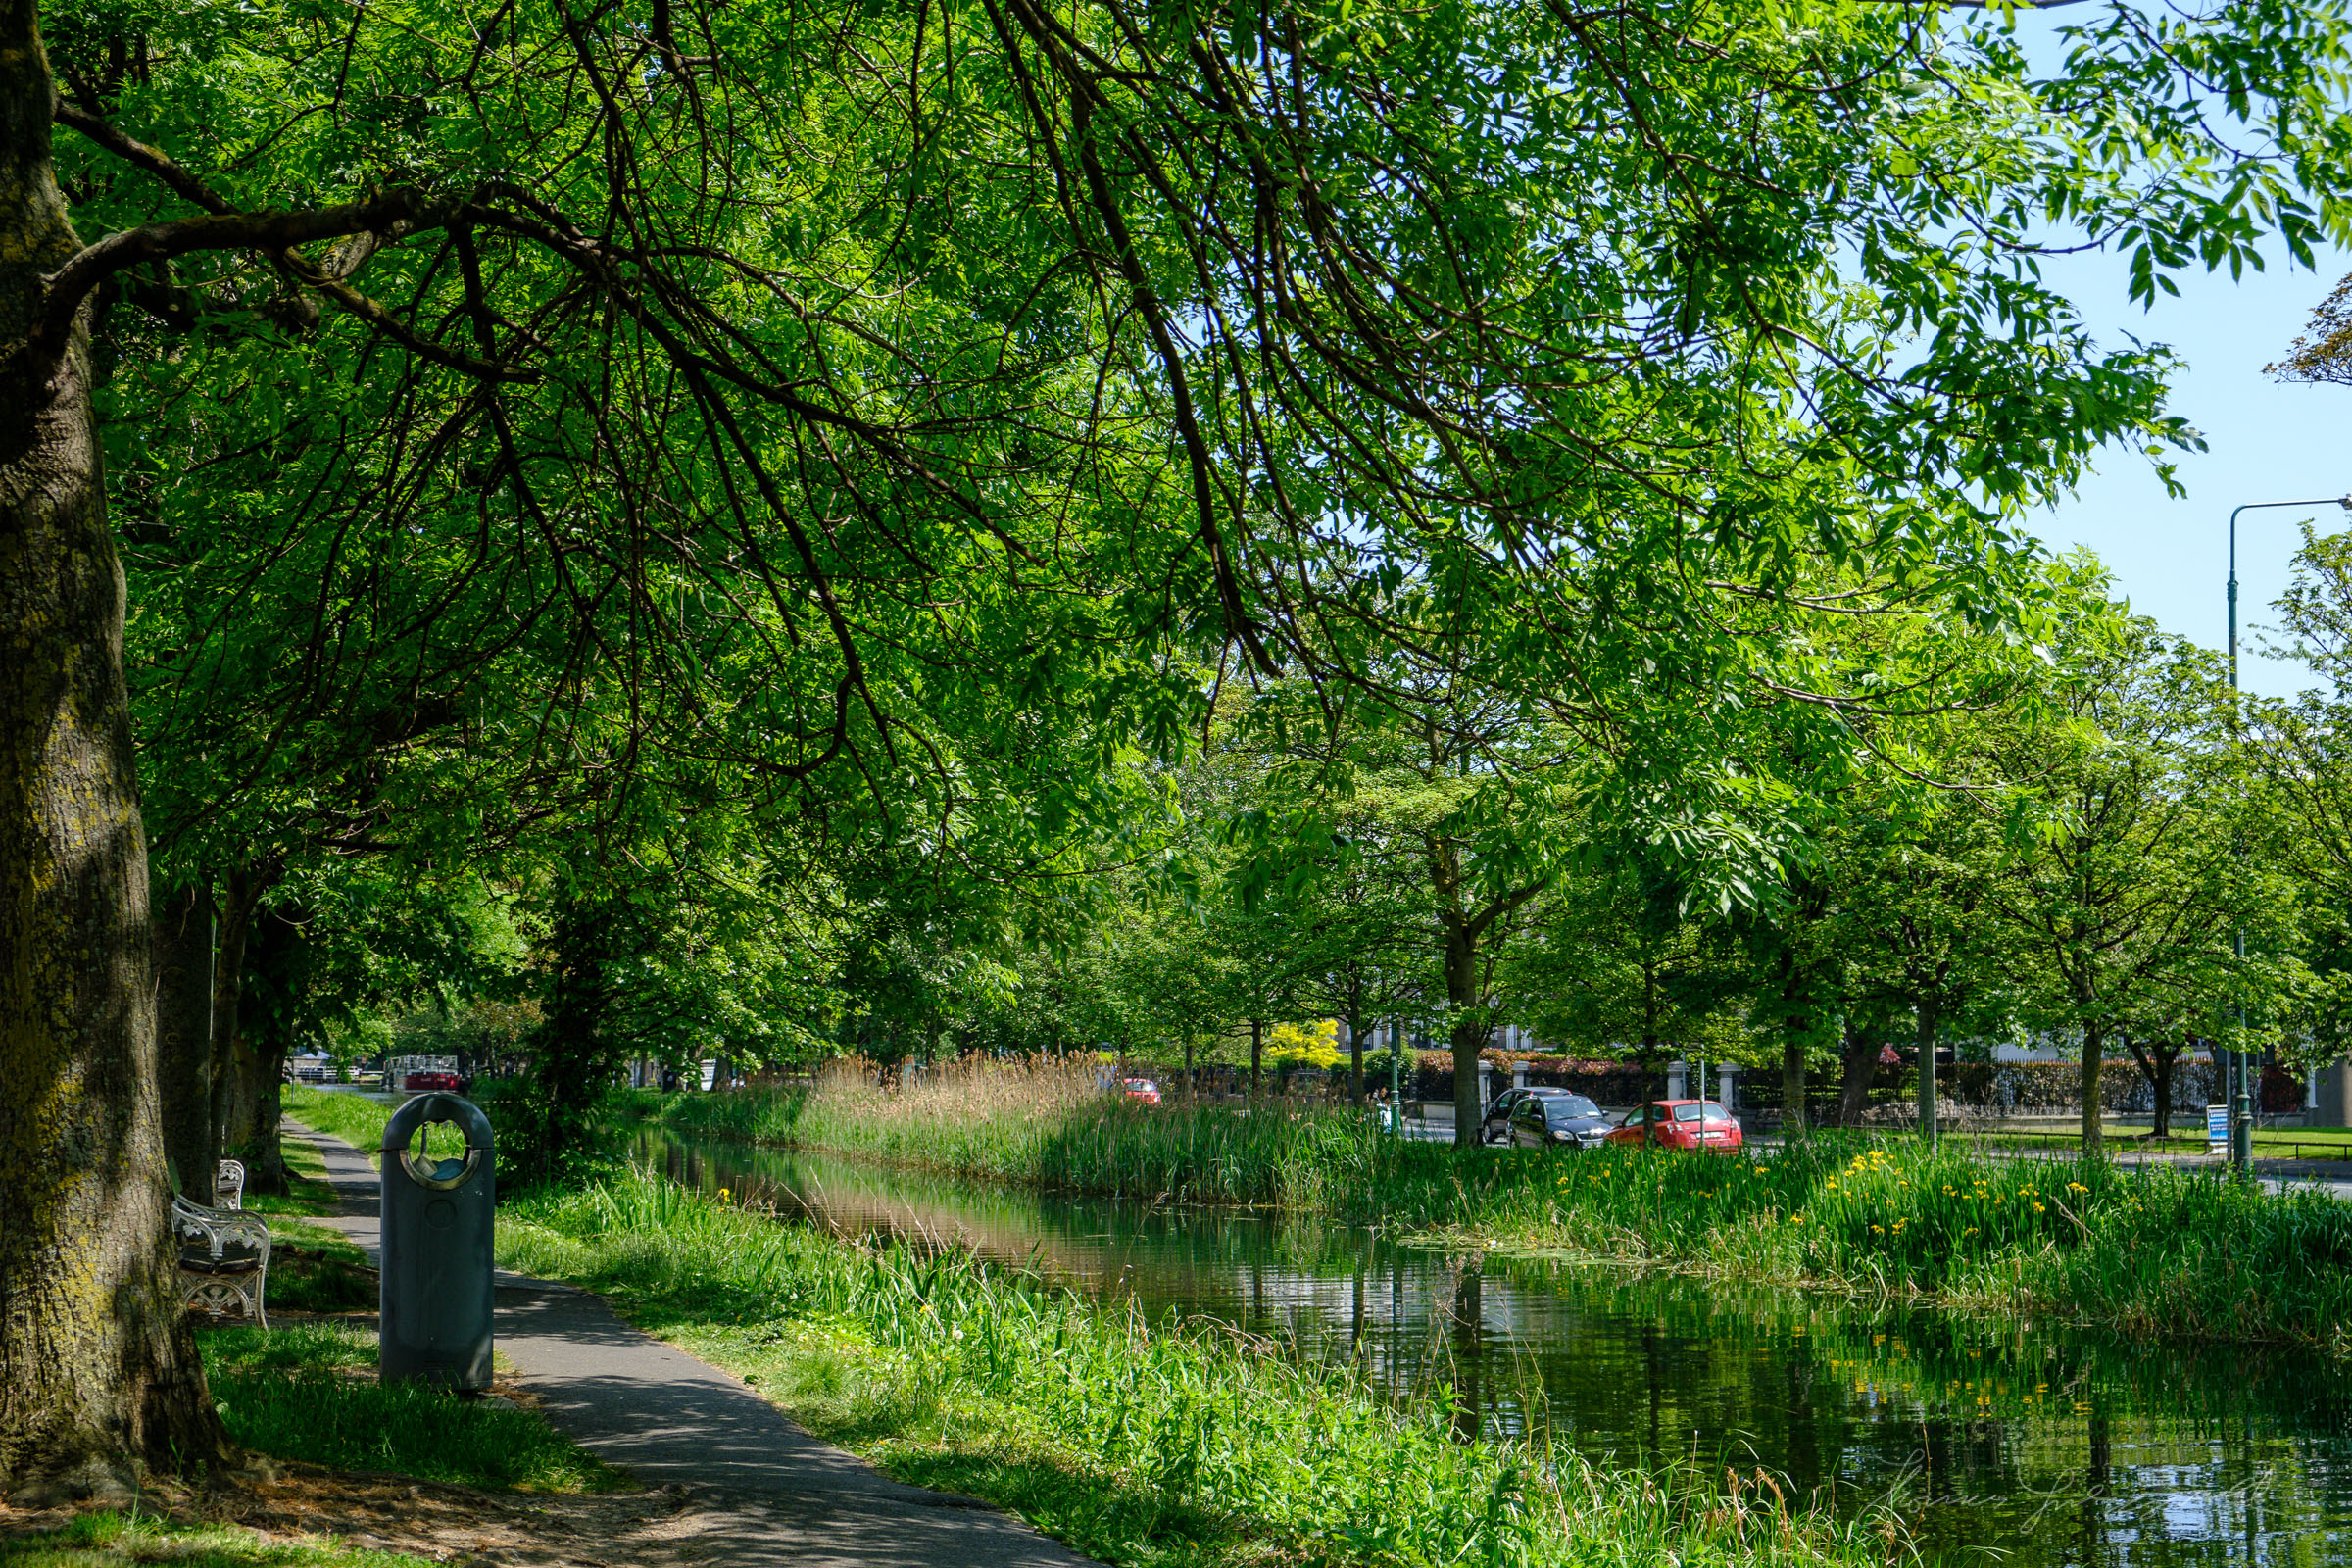 Canopy of Trees over the Canal Image from Fuji X-Pro 2 converted with Iridient X-Transformer